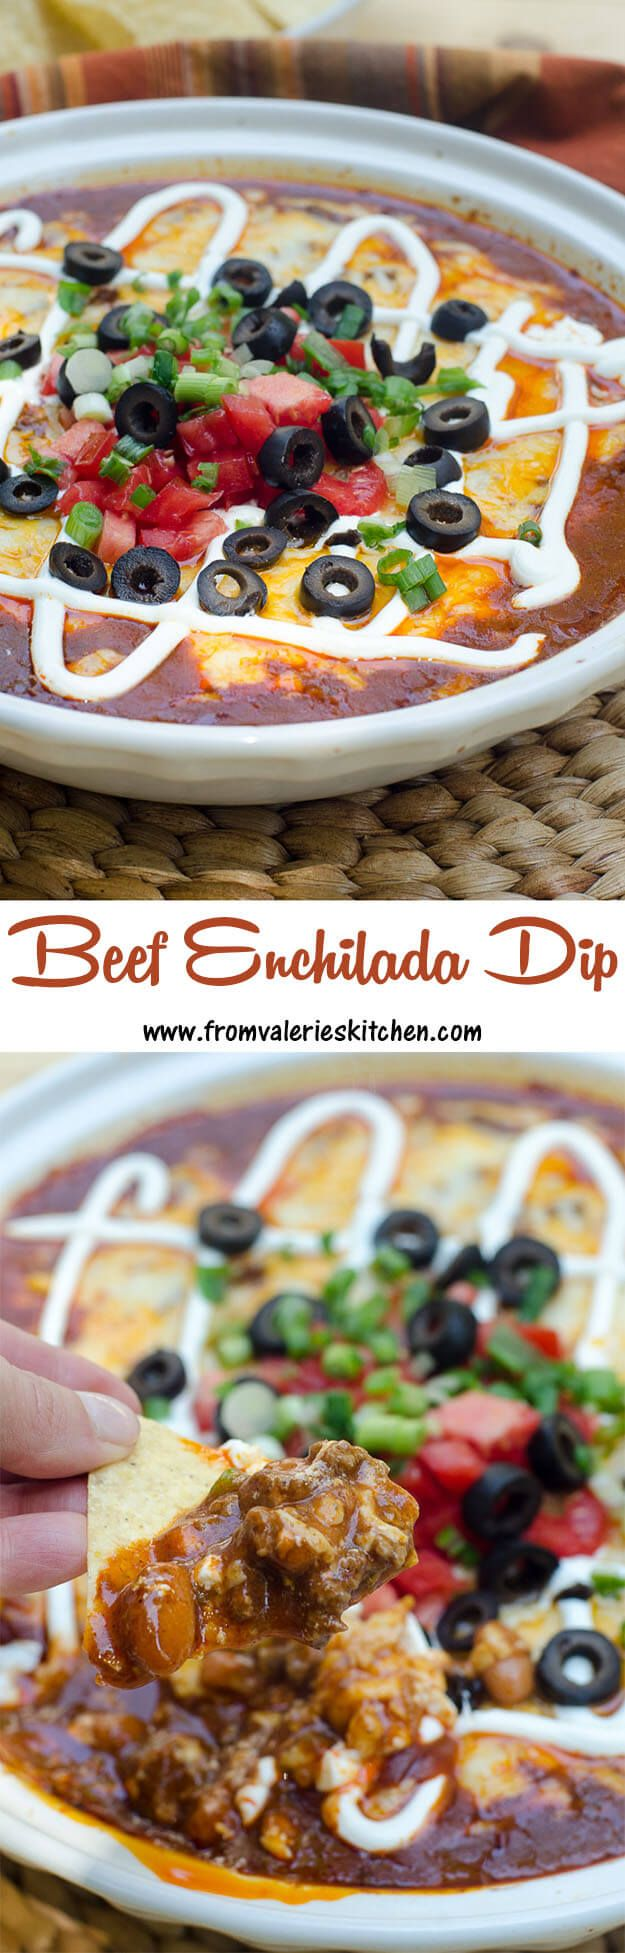 A beefy, substantial Mexican-inspired appetizer! ~ http://www.fromvalerieskitchen.com